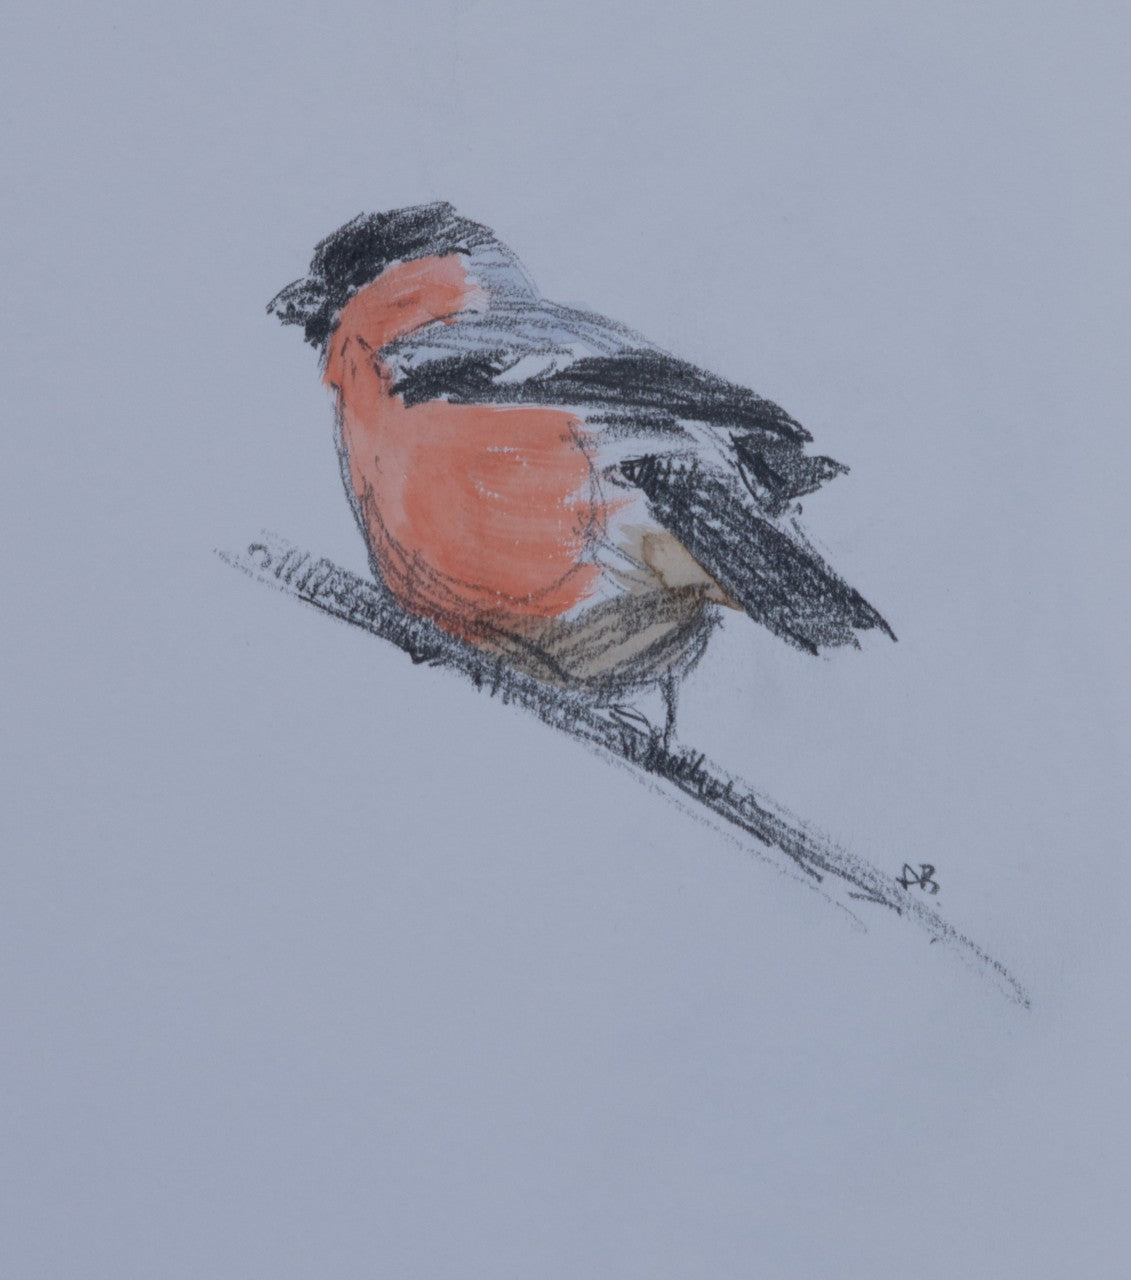 'Bullfinch' - Original pencil & watercolour sketch by Ashley Boon - 6.5 x 5.5""